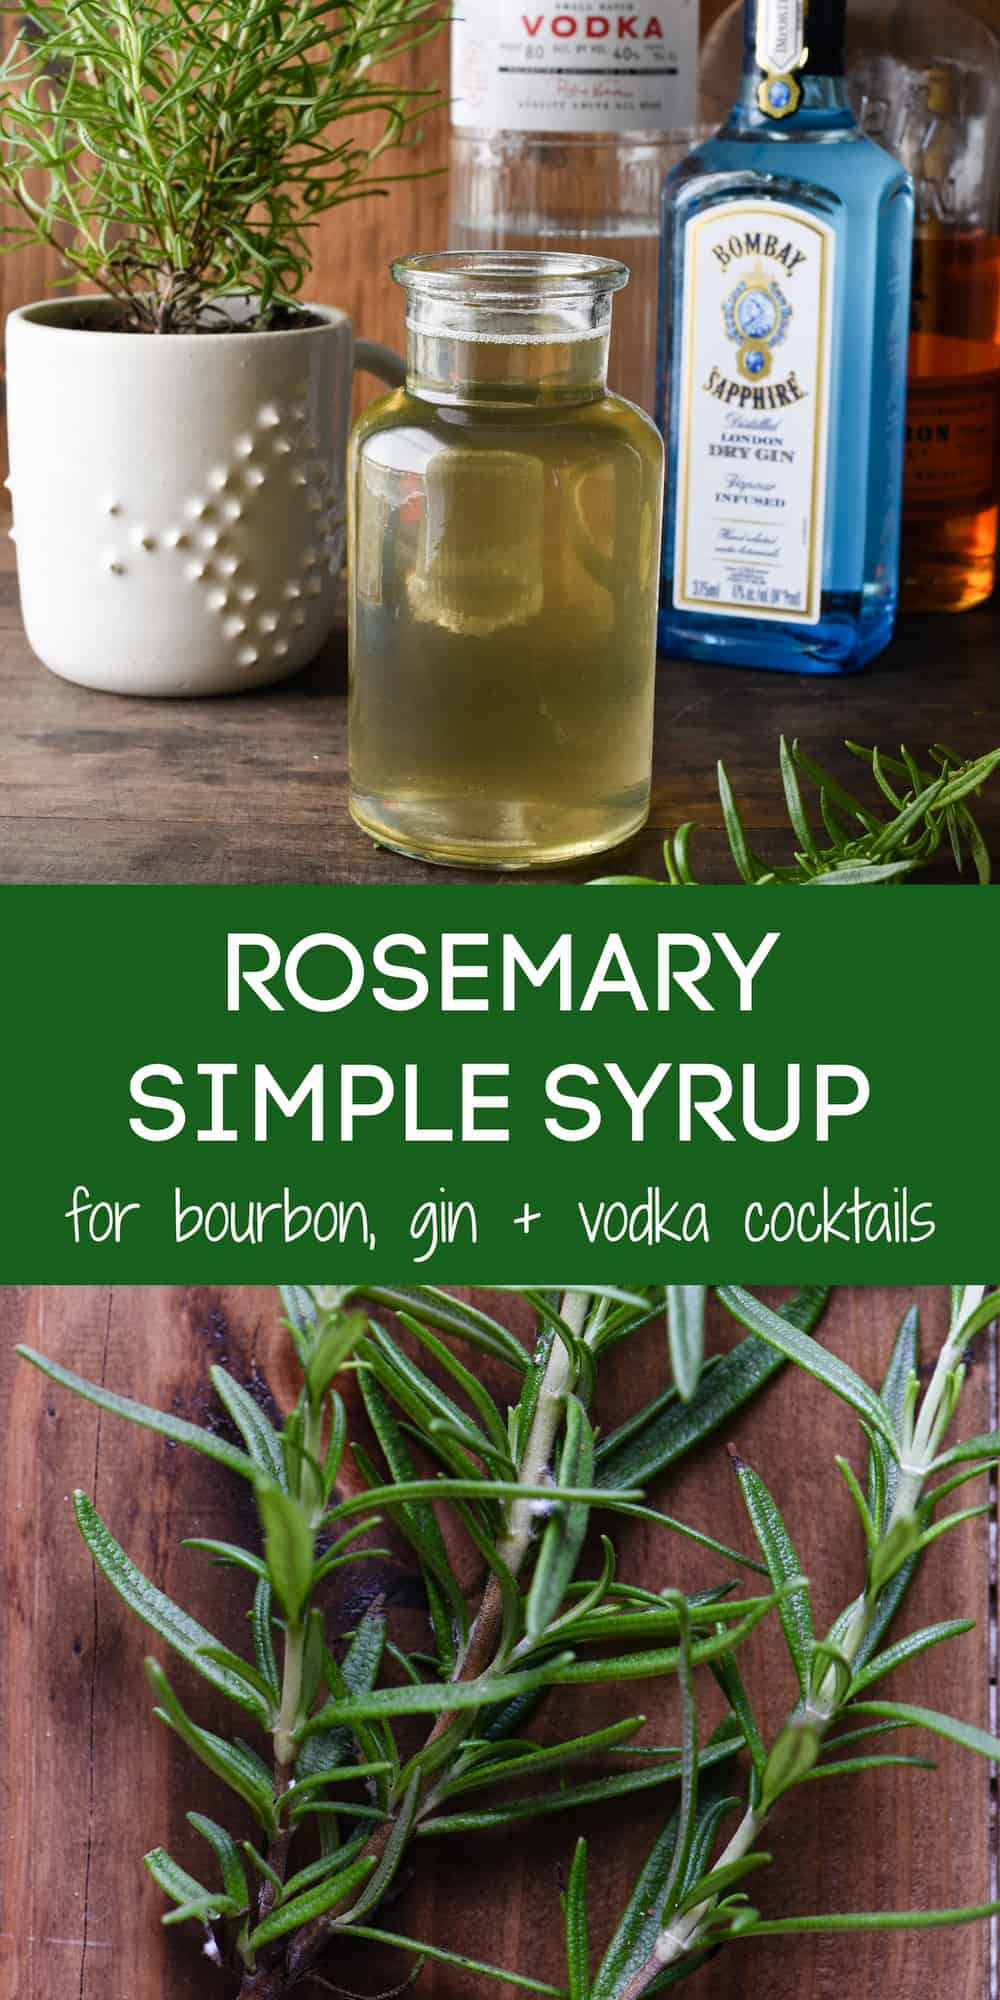 Collage of images of fresh rosemary and rosemary simple syrup with overlay: ROSEMARY SIMPLE SYRUP for bourbon, gin + vodka cocktails